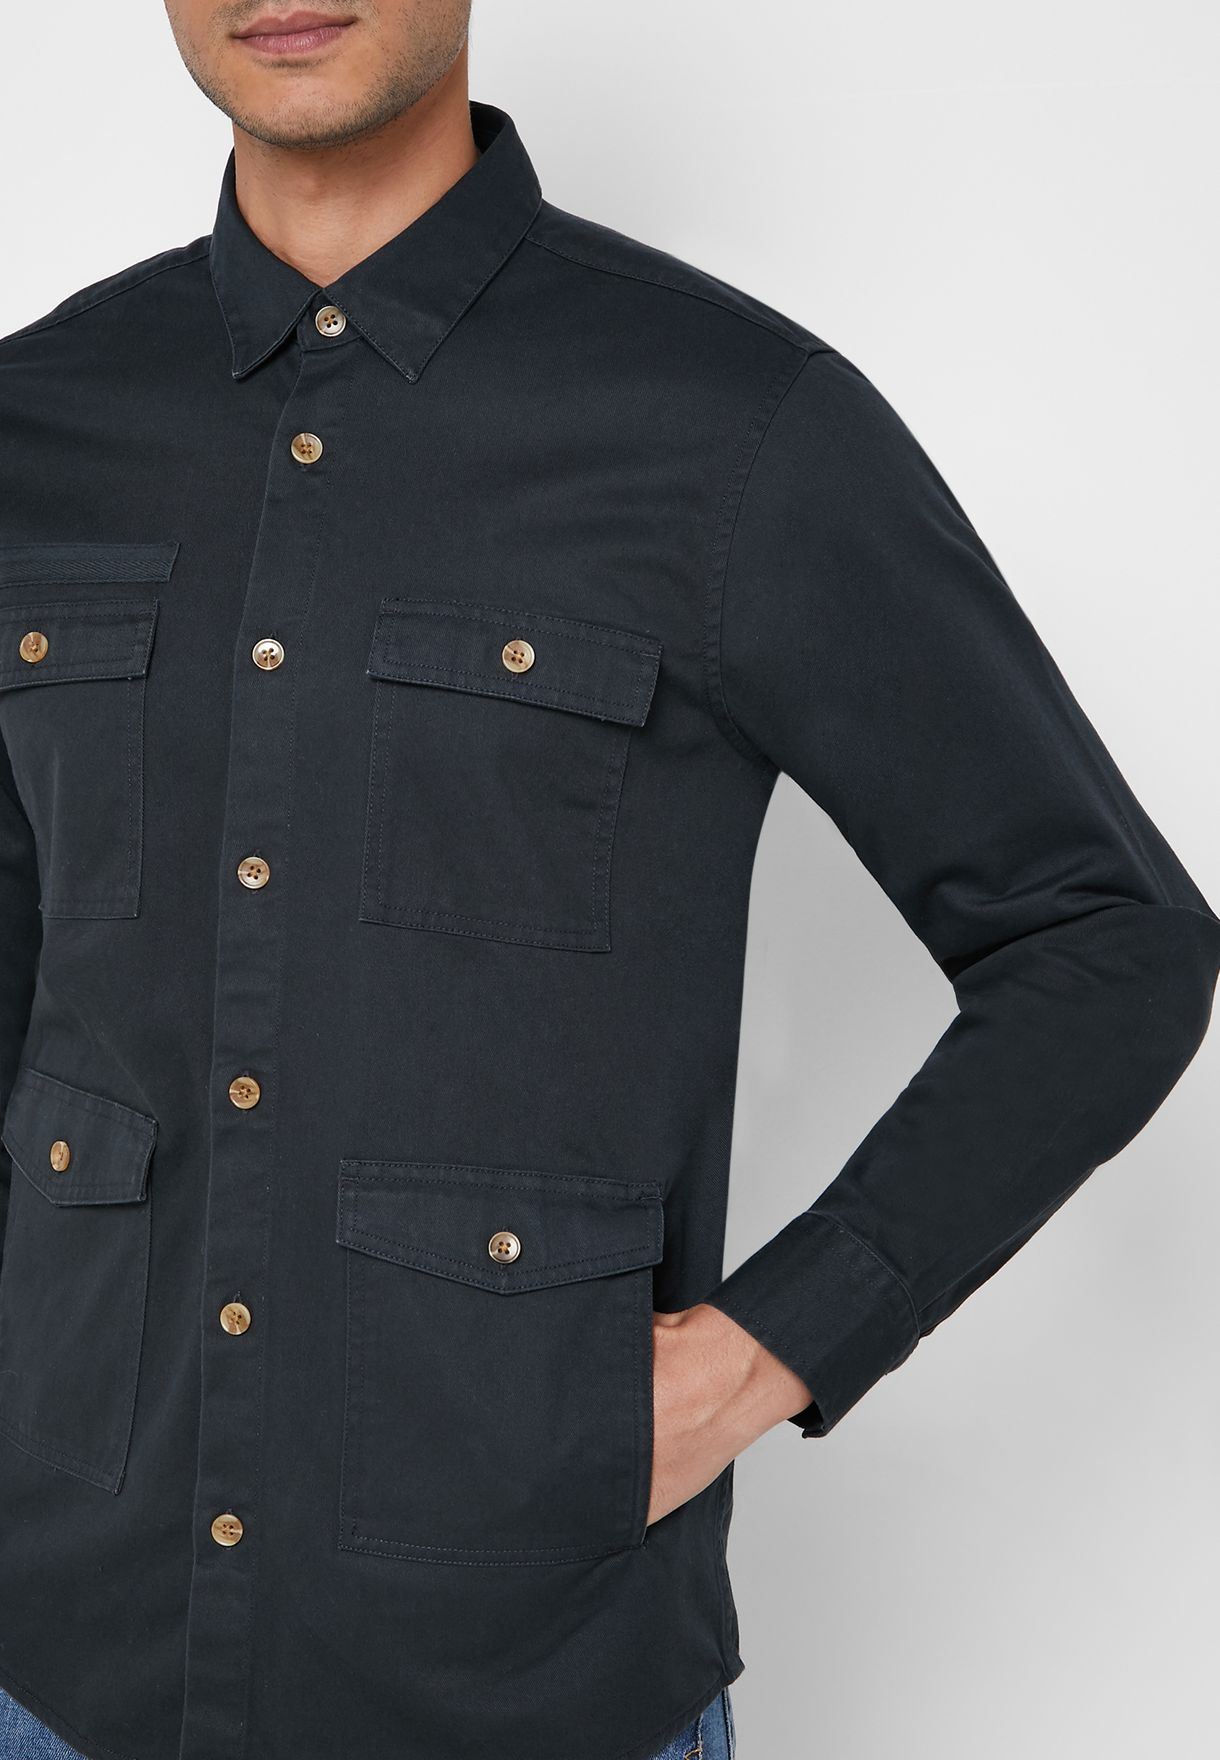 Orton Twill Workwear  Shirt